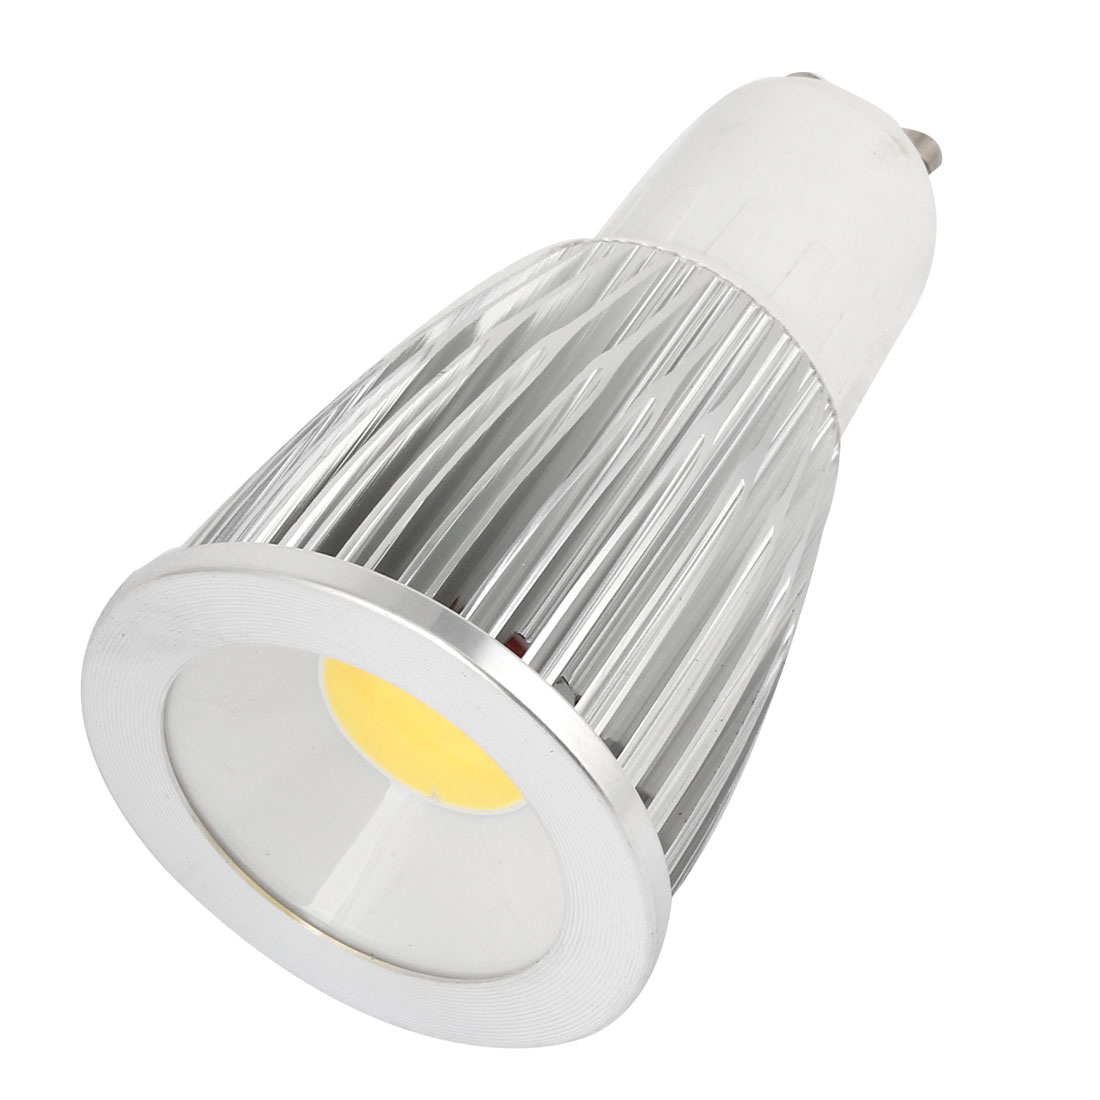 AC 85-265V 12W GU10 Dimmable White Light COB LED Downlight Spotlight